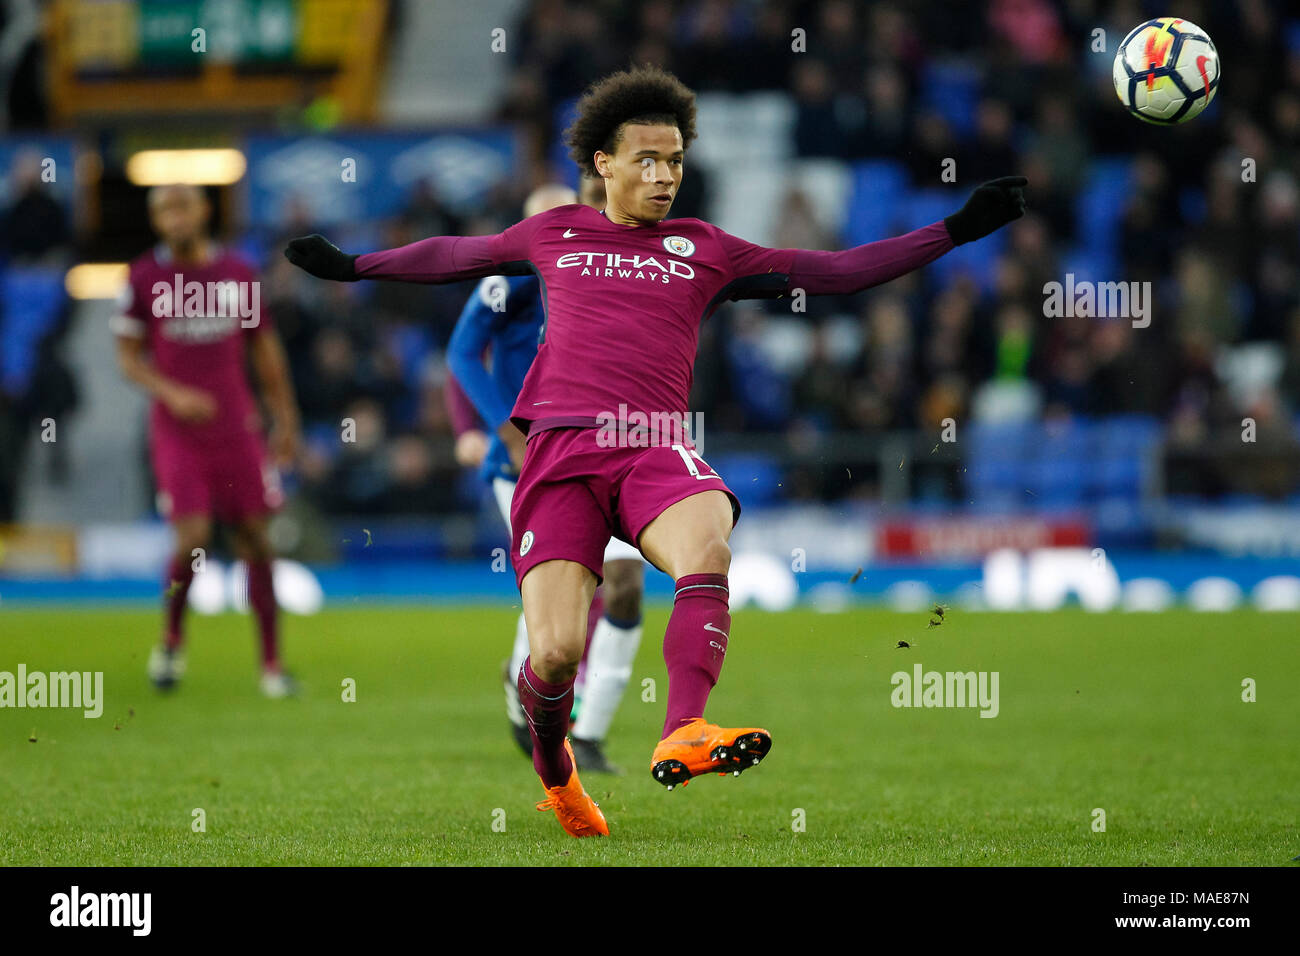 e2aa16513e2f Leroy Sane of Manchester City during the Premier League match between  Everton and Manchester City at